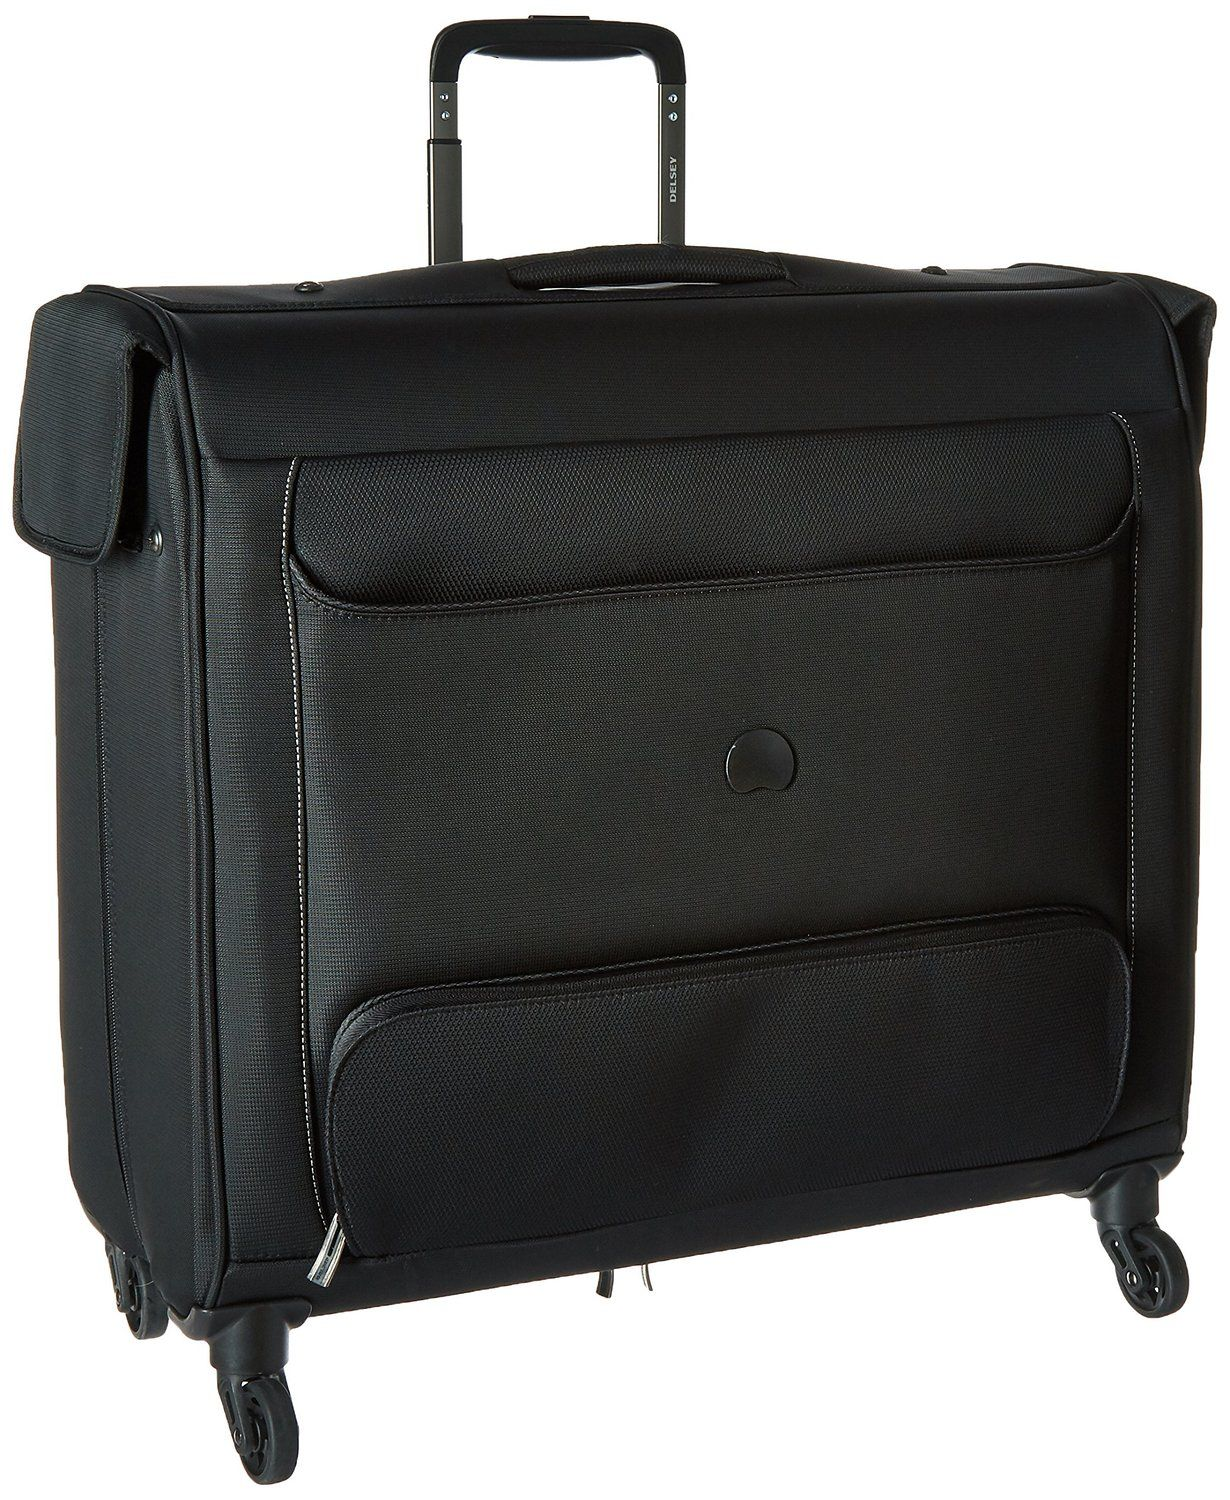 Delsey Luggage Chatillon Trolley Garment Bag Wow I Love This Check It Out